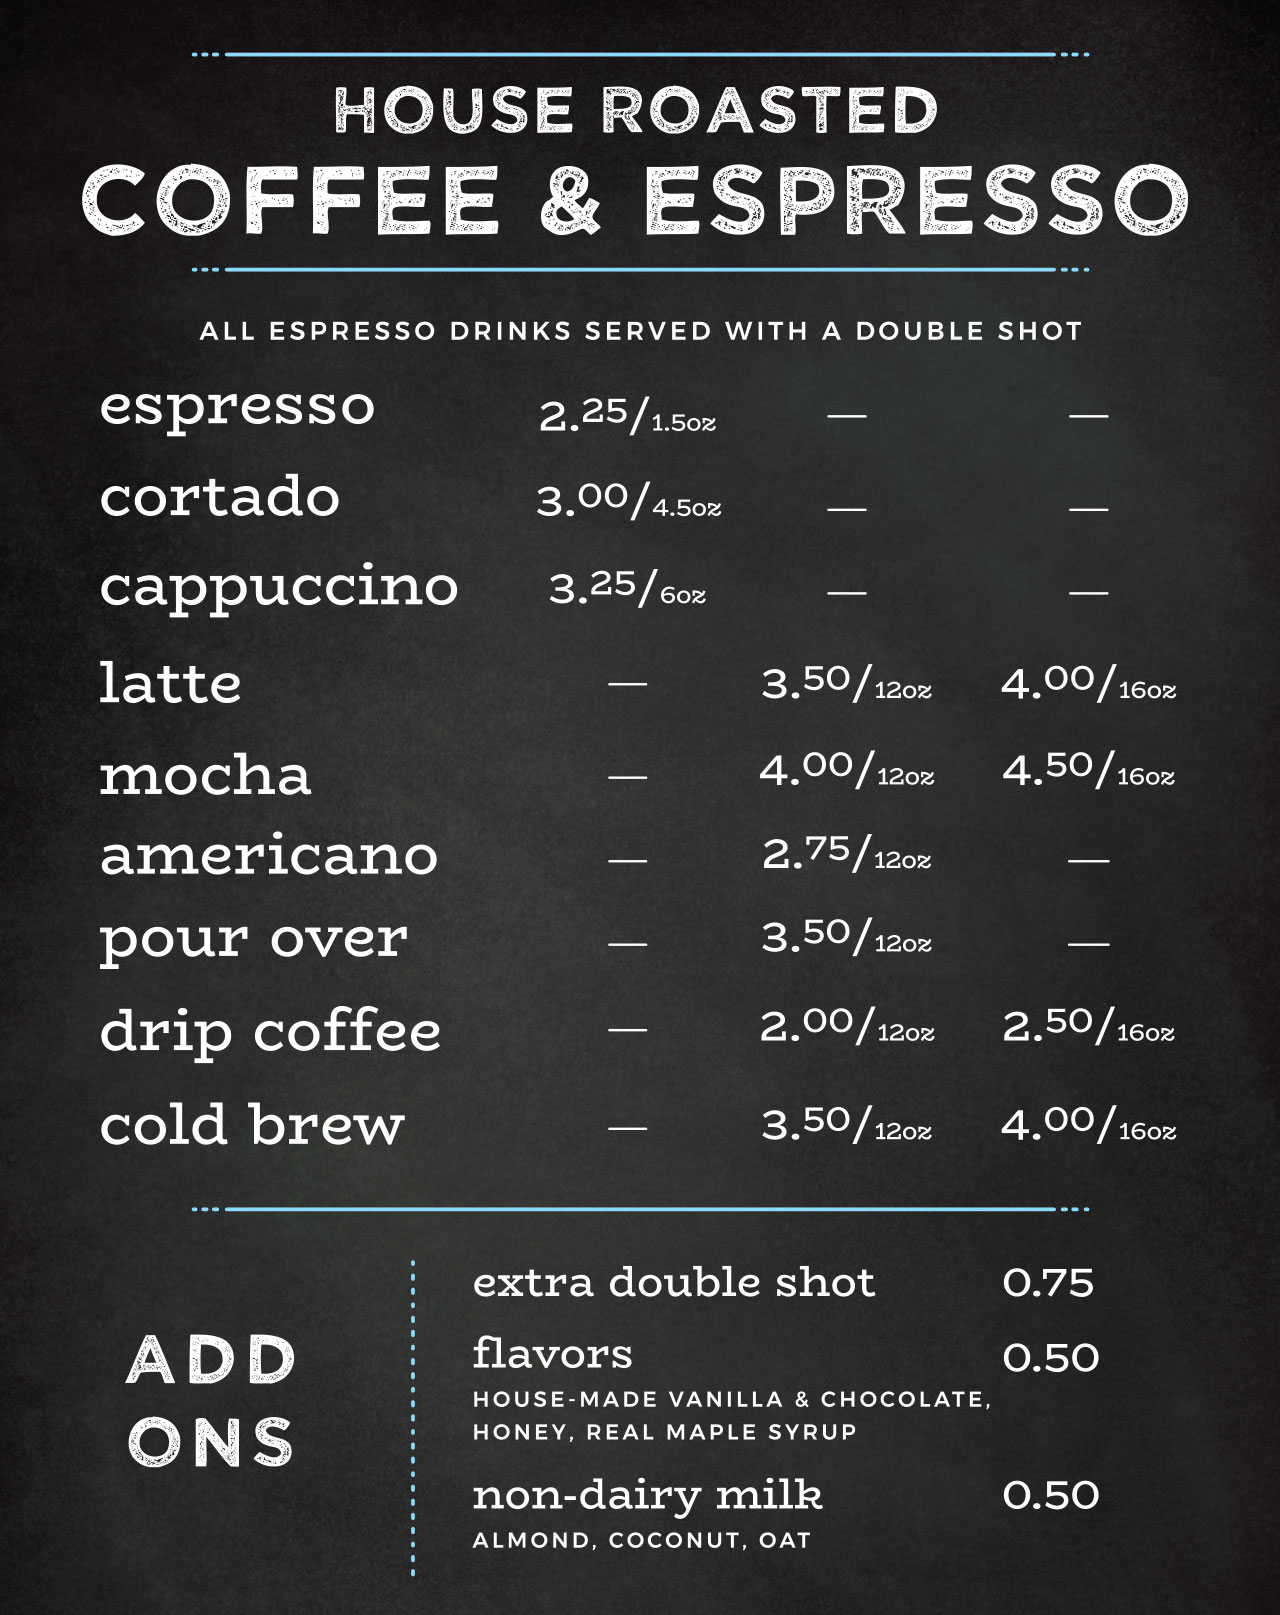 TRIBUTARY-MENU-cofffee.jpg